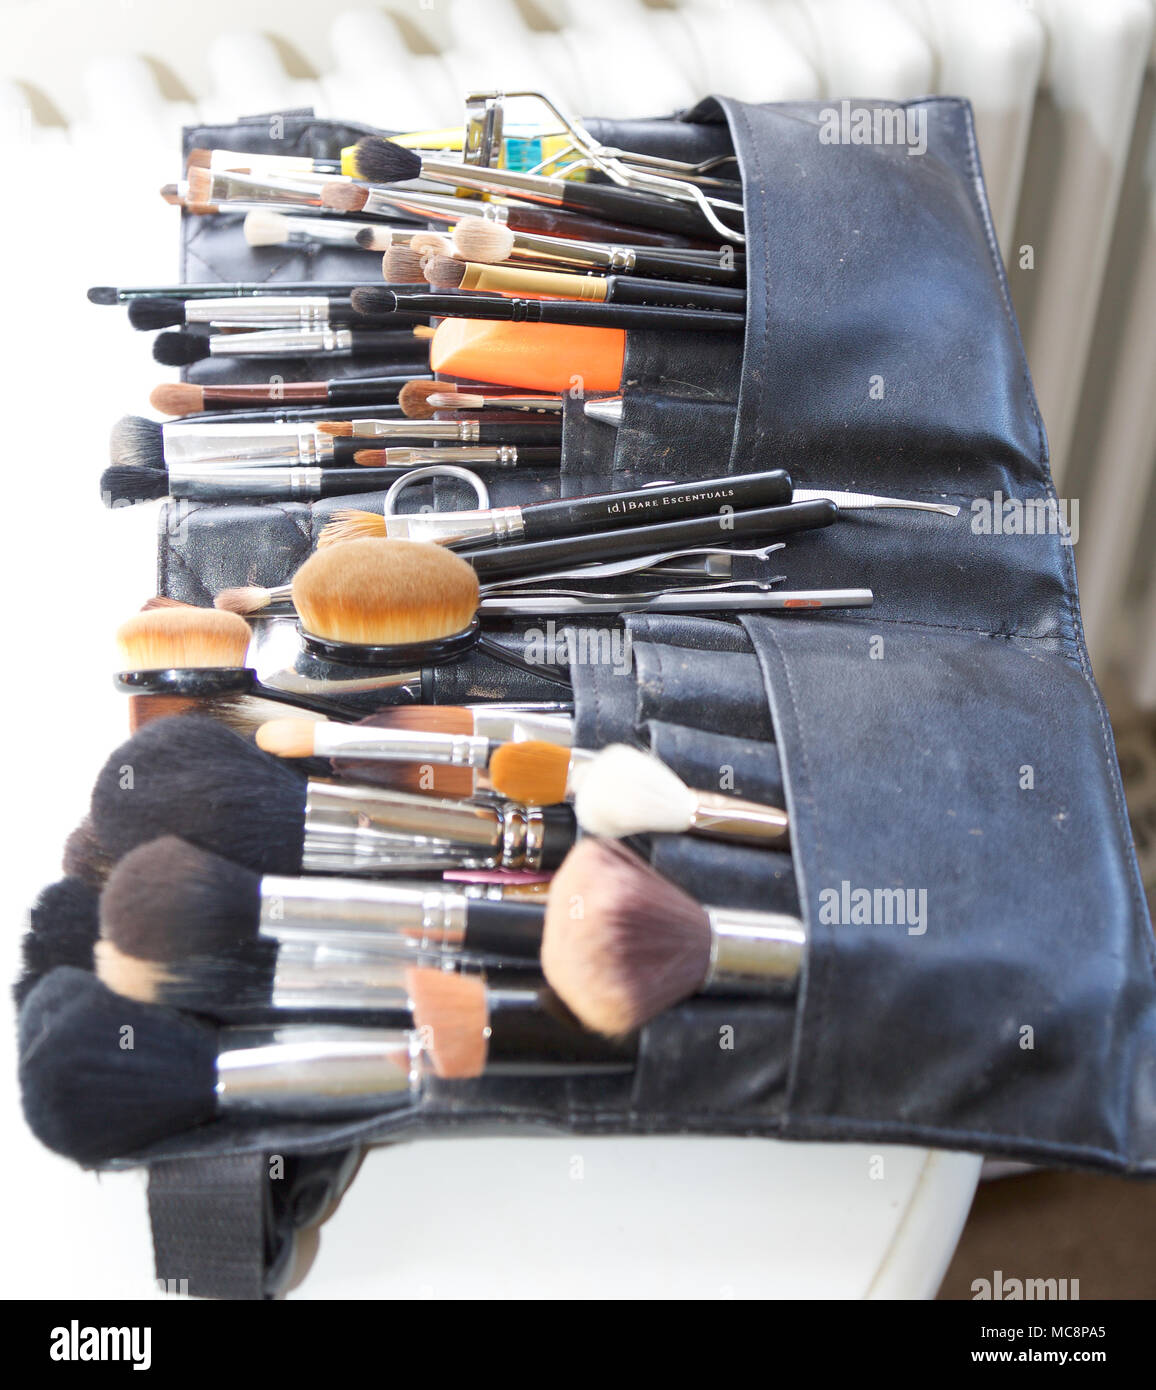 Professional make up brushes in a case - Stock Image